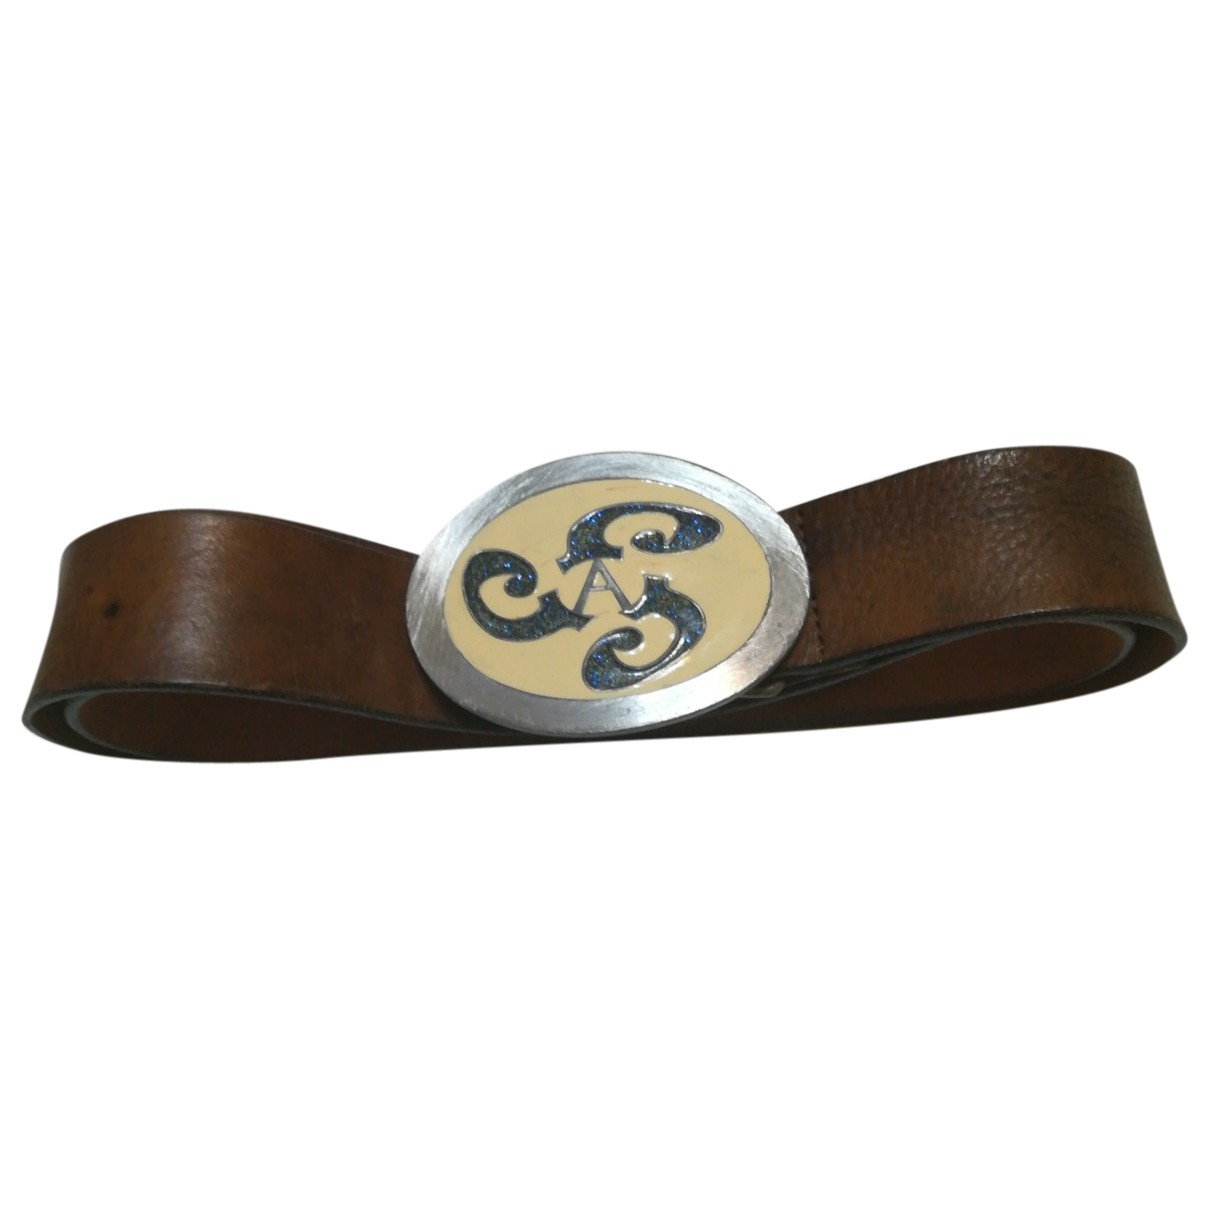 Armani Jeans \N Brown Leather belt for Women L International